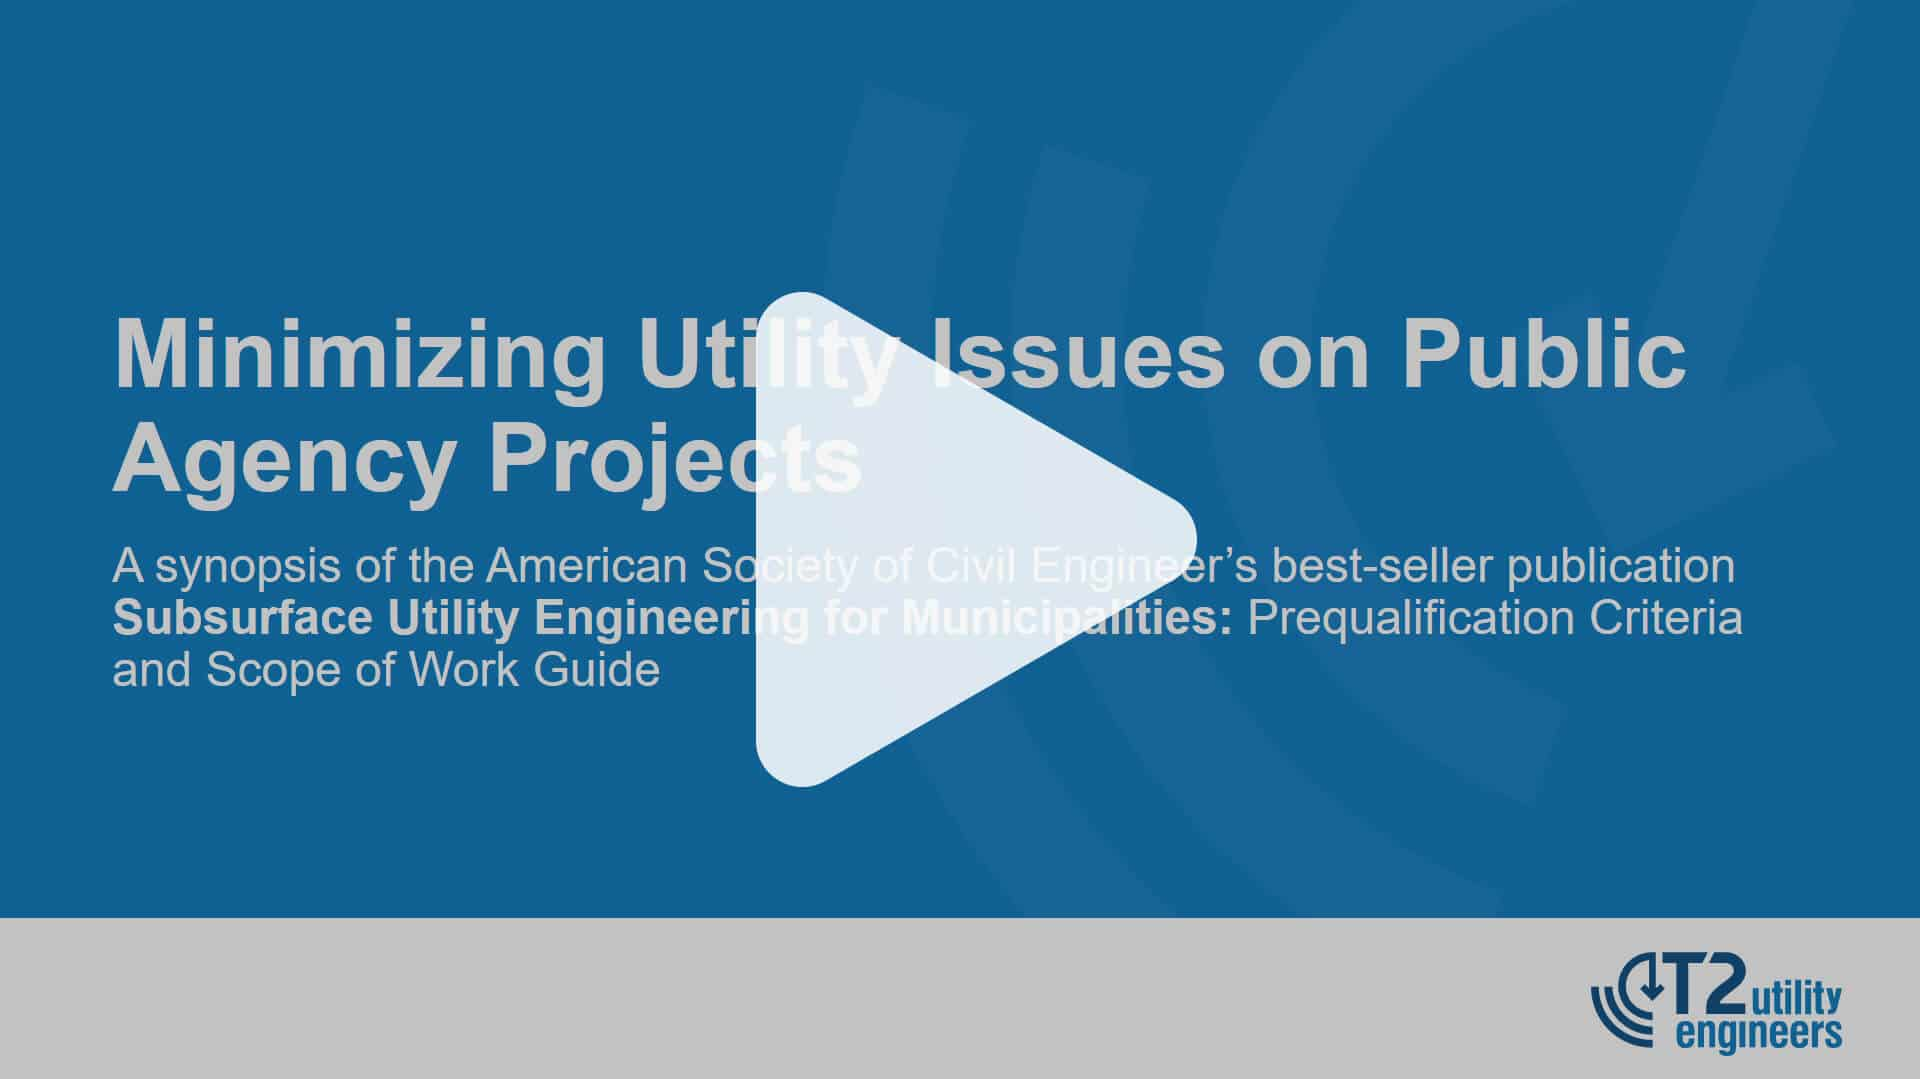 minimizing-utility-issues-on-public-agency-projects